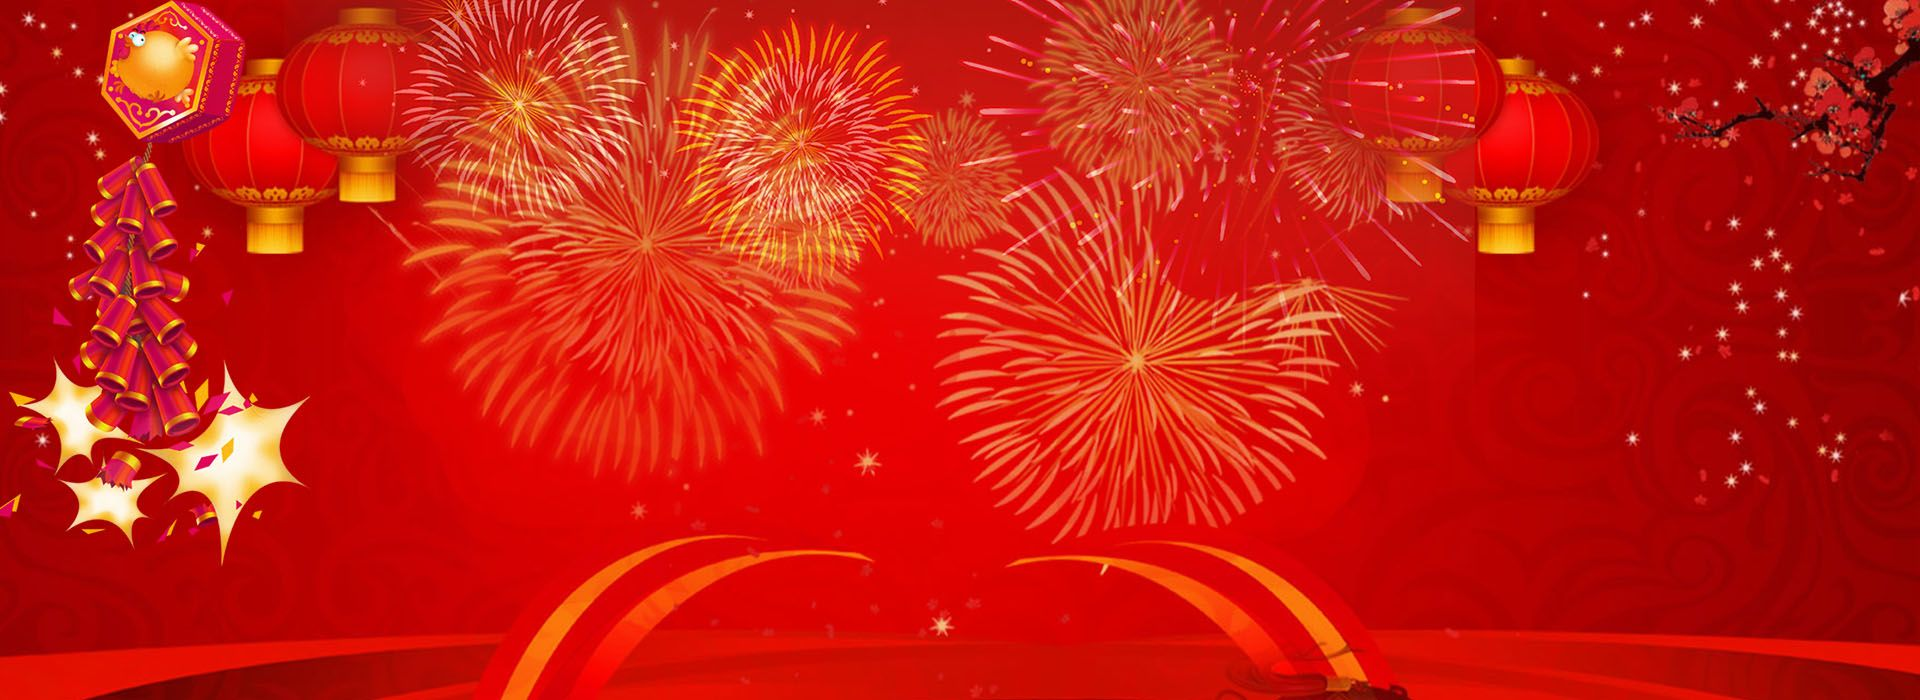 Happy New Year Red Background Happy new year background